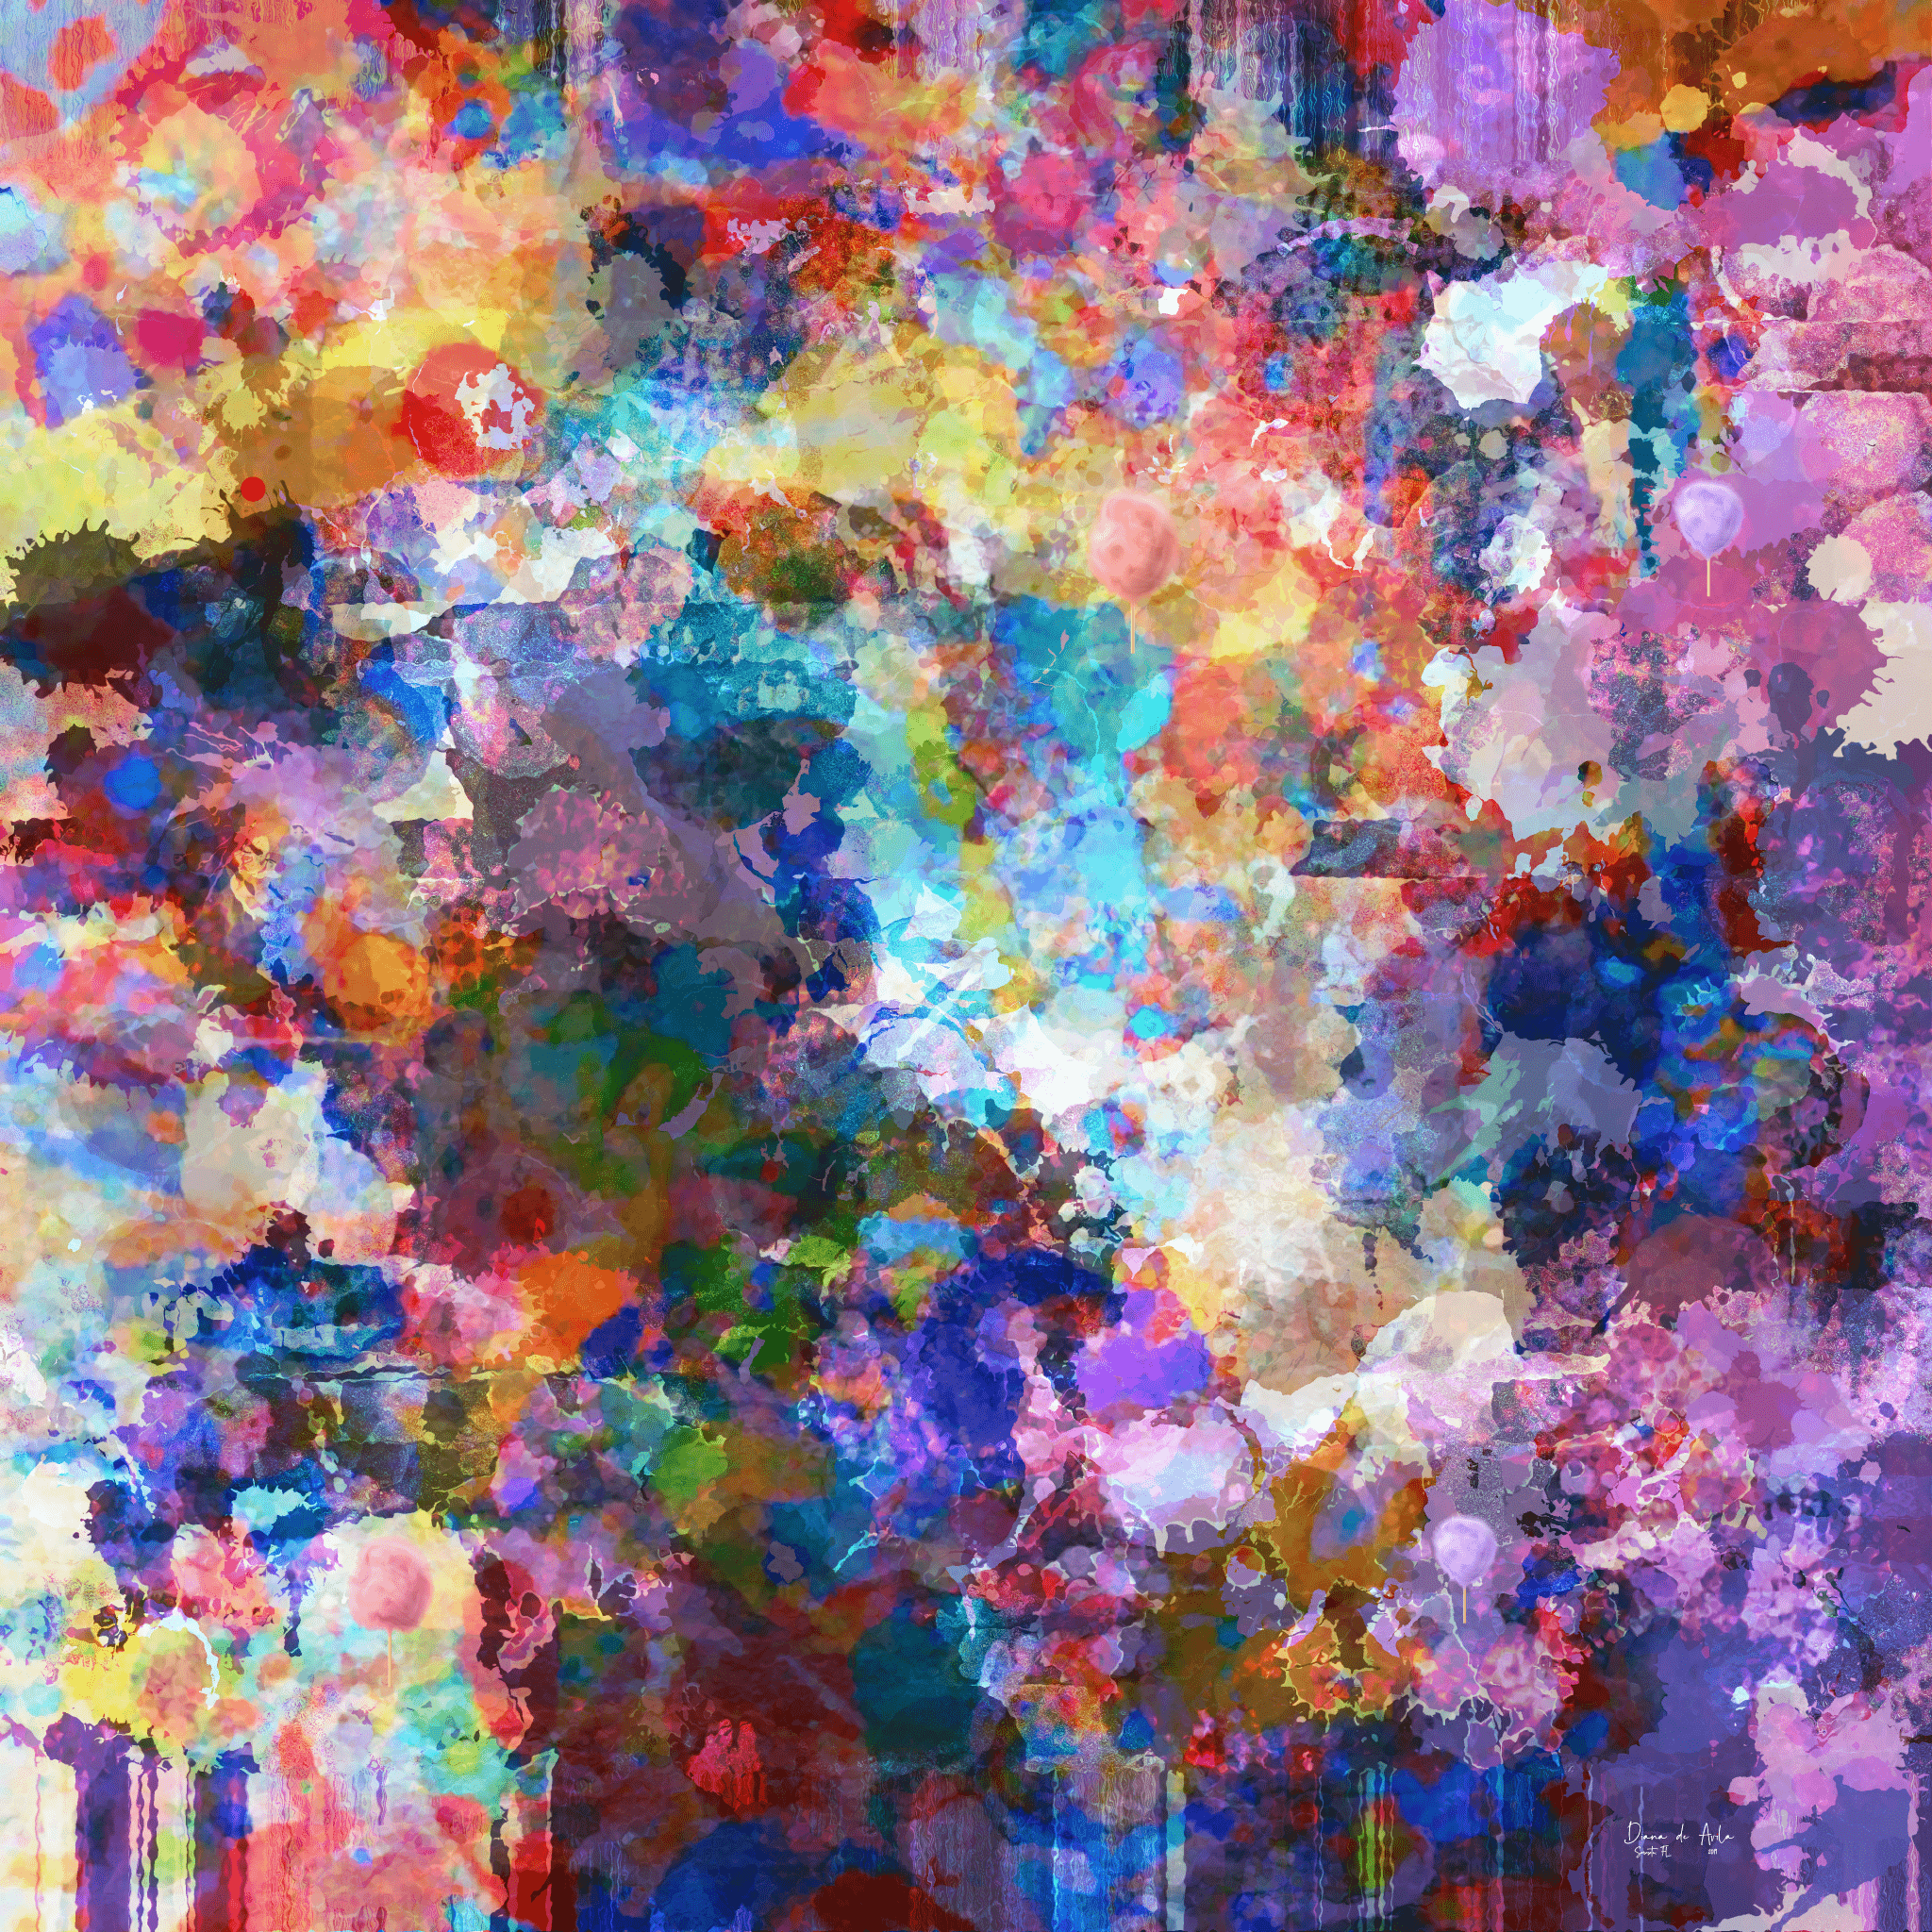 """""""Cotton Candy Summers"""" A happy piece evoking warm thoughts of childhood memories."""